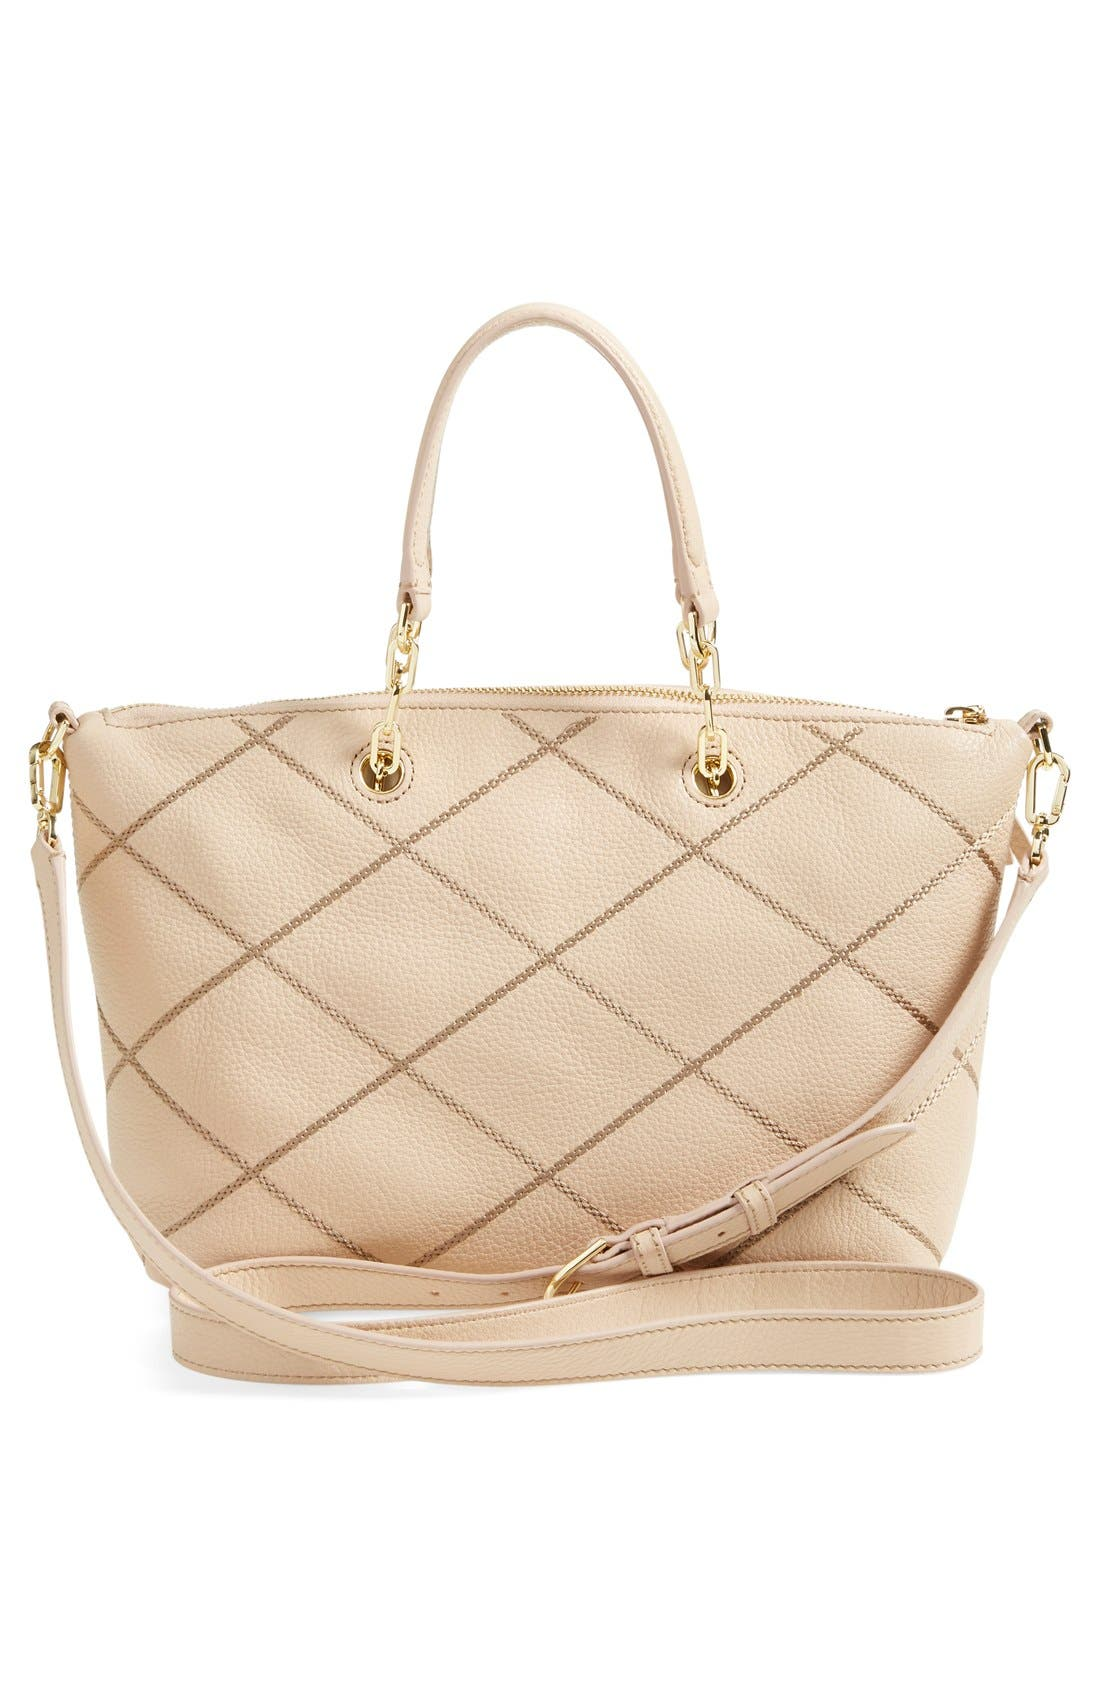 Alternate Image 3  - Tory Burch 'Small Stitch' Leather Satchel (Nordstrom Exclusive)